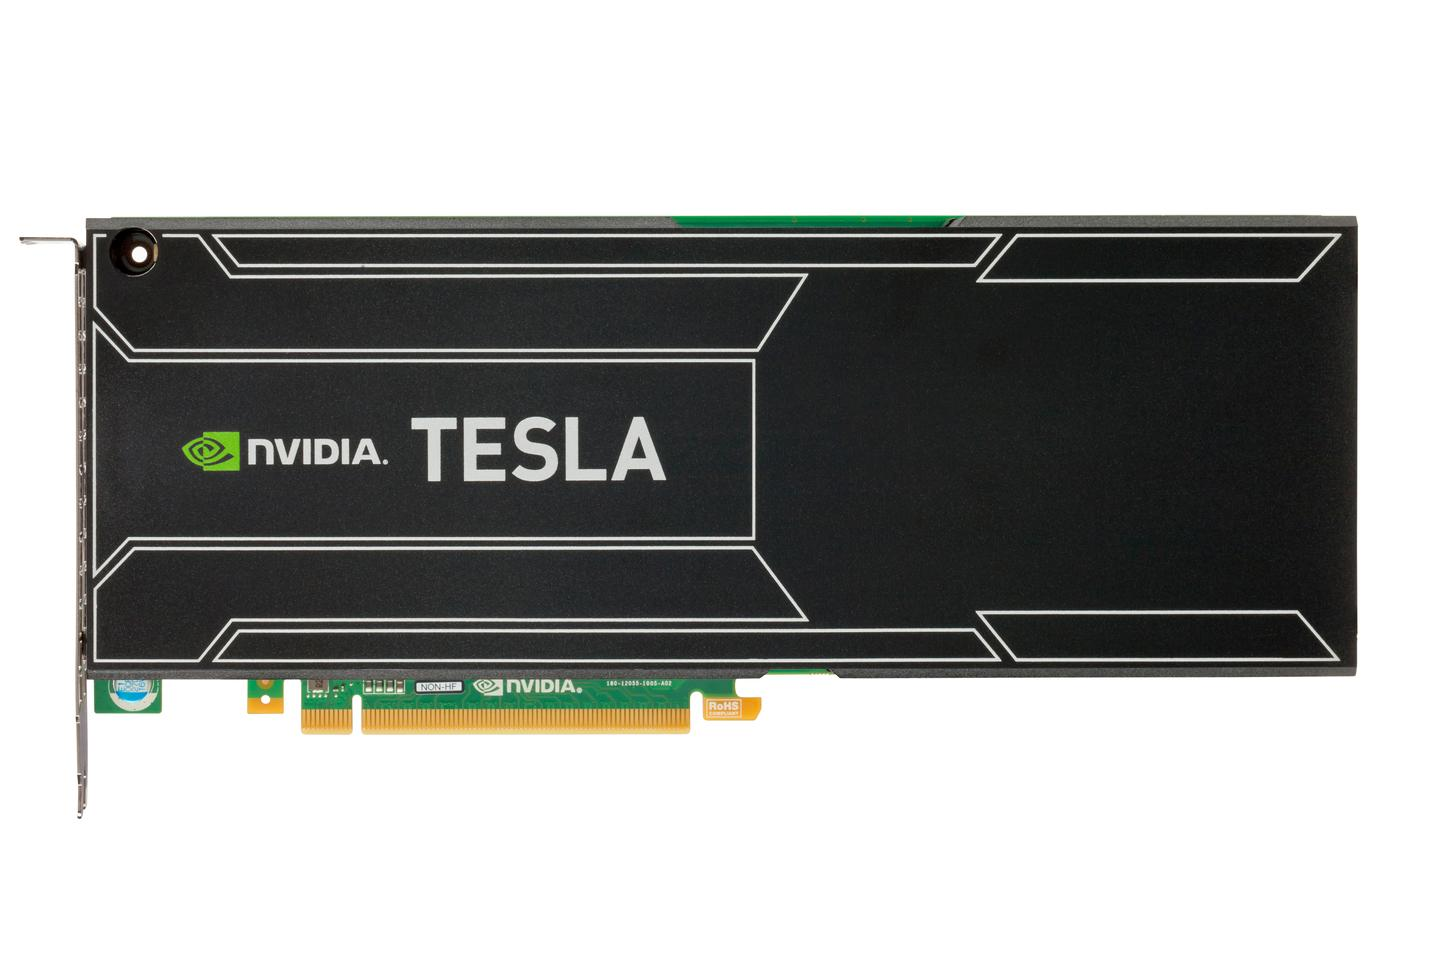 NIVIDA Tesla graphics processor unit